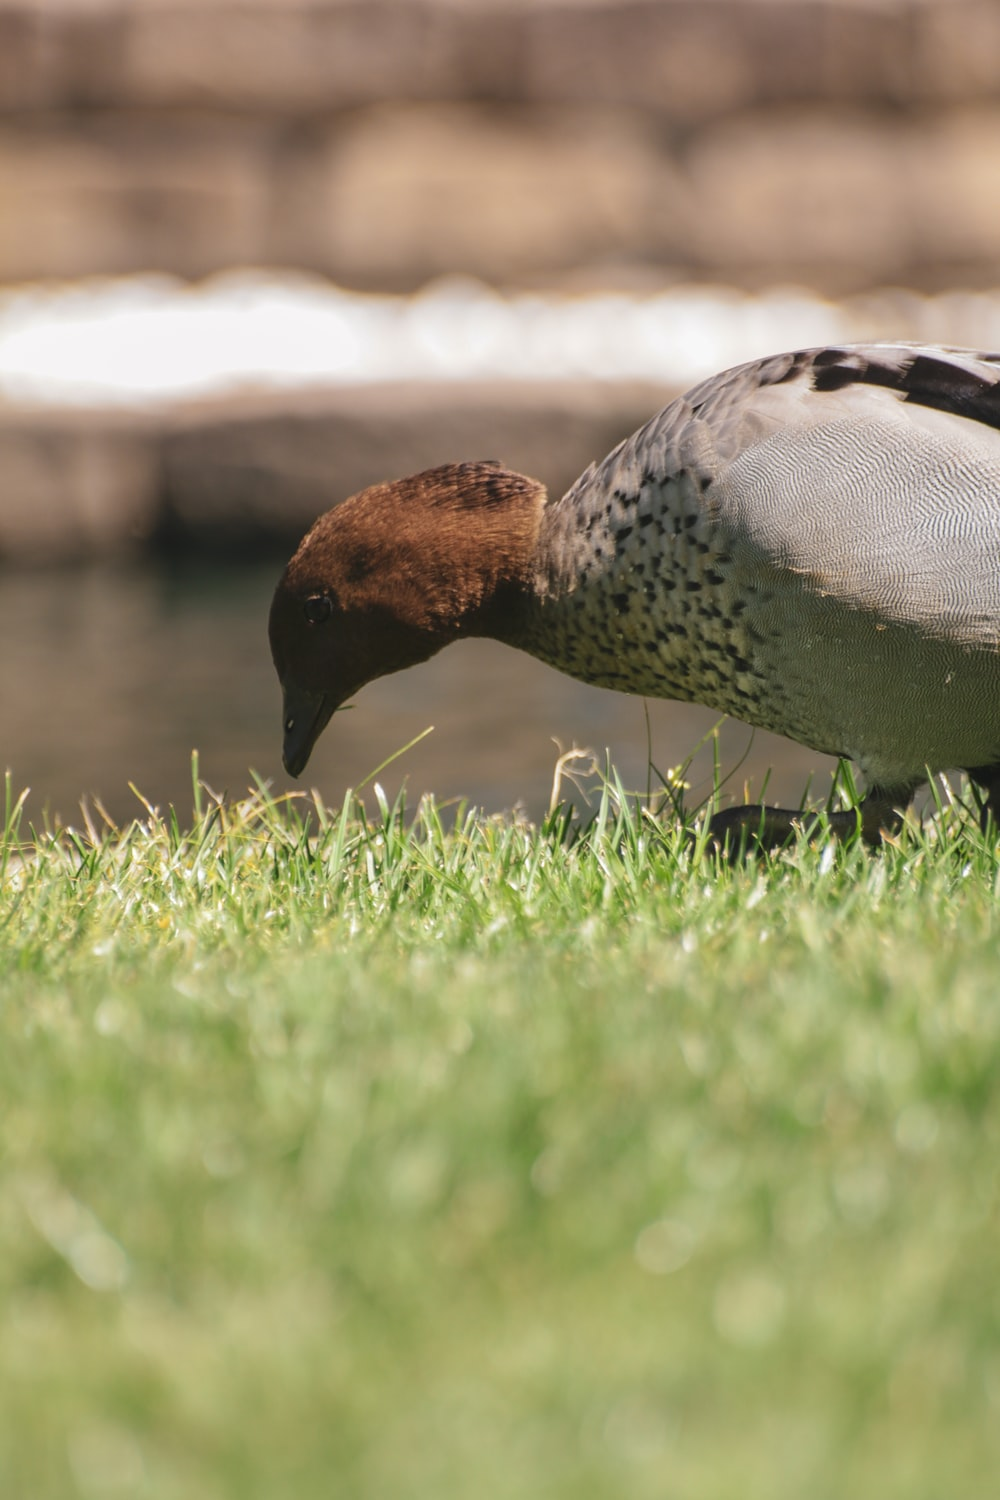 brown and gray bird on grass field on selective focus photography